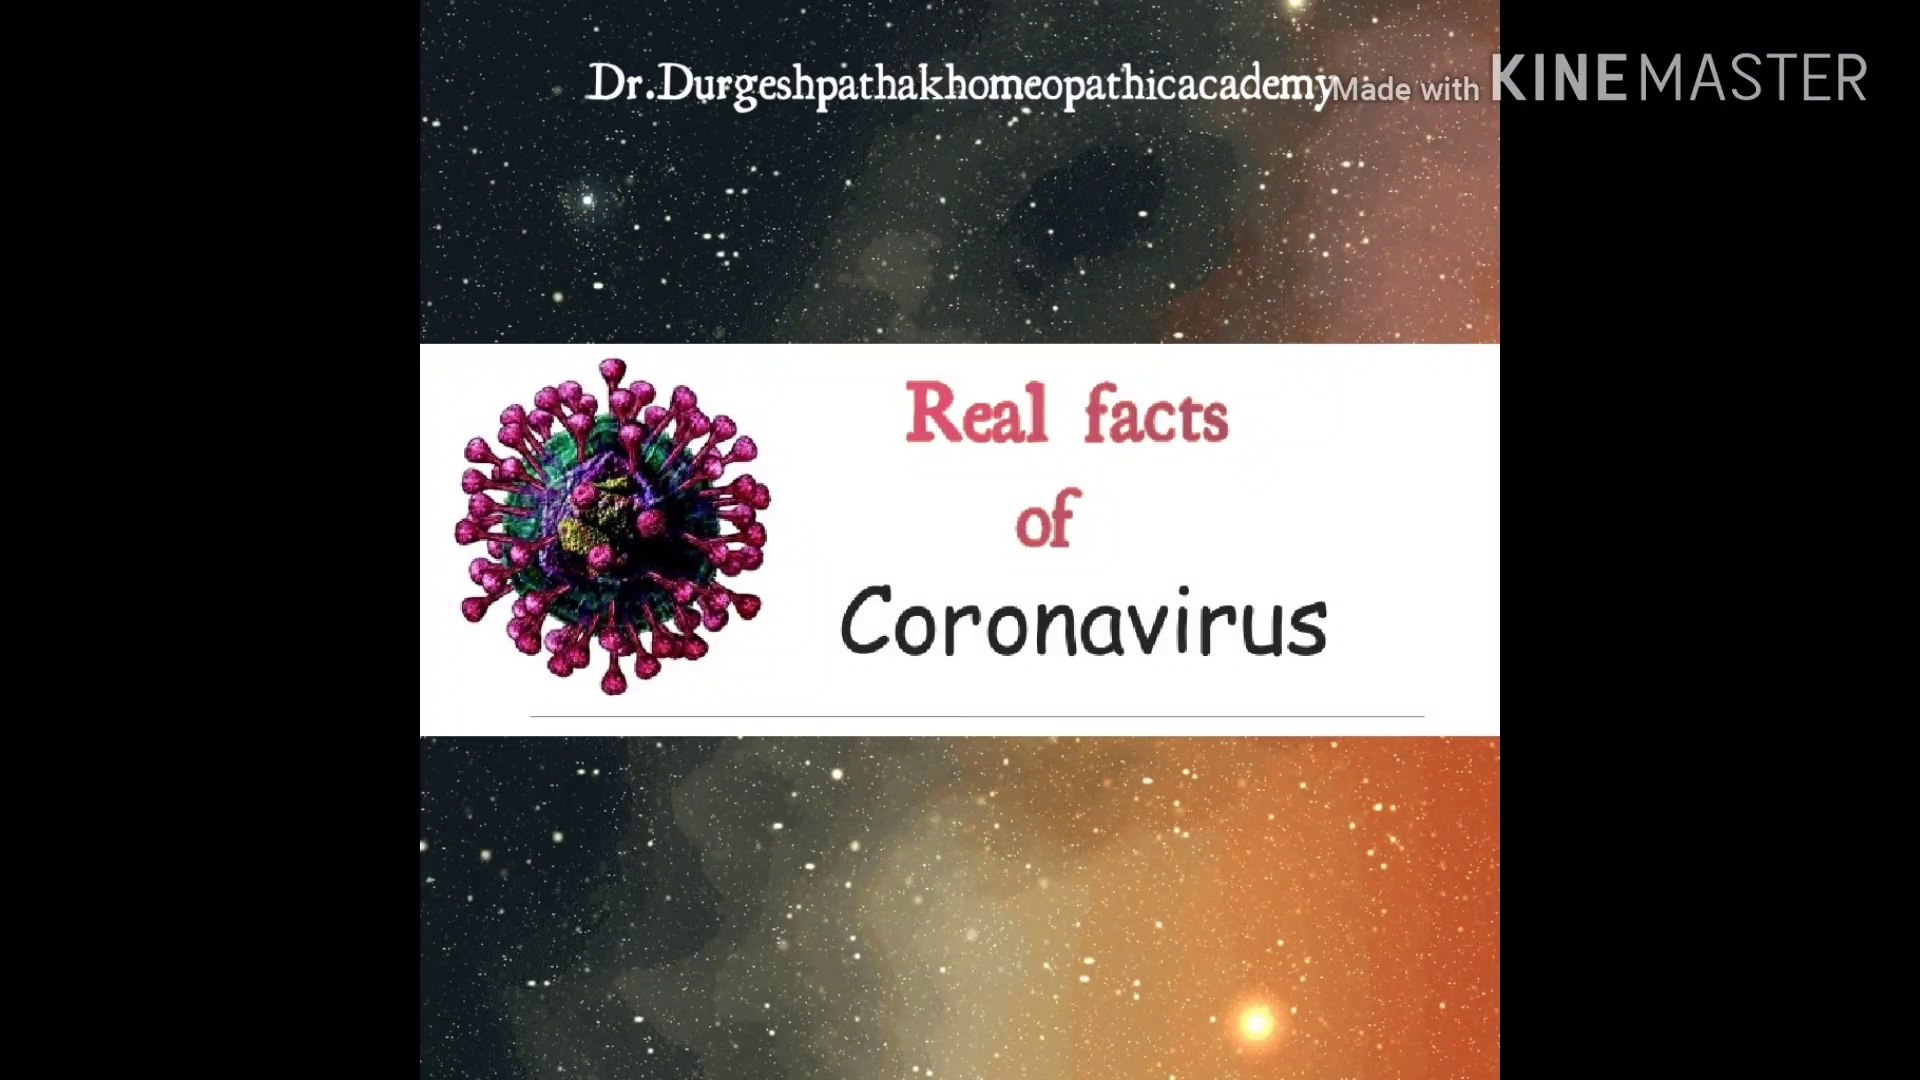 CORONA VIRUS-Real facts